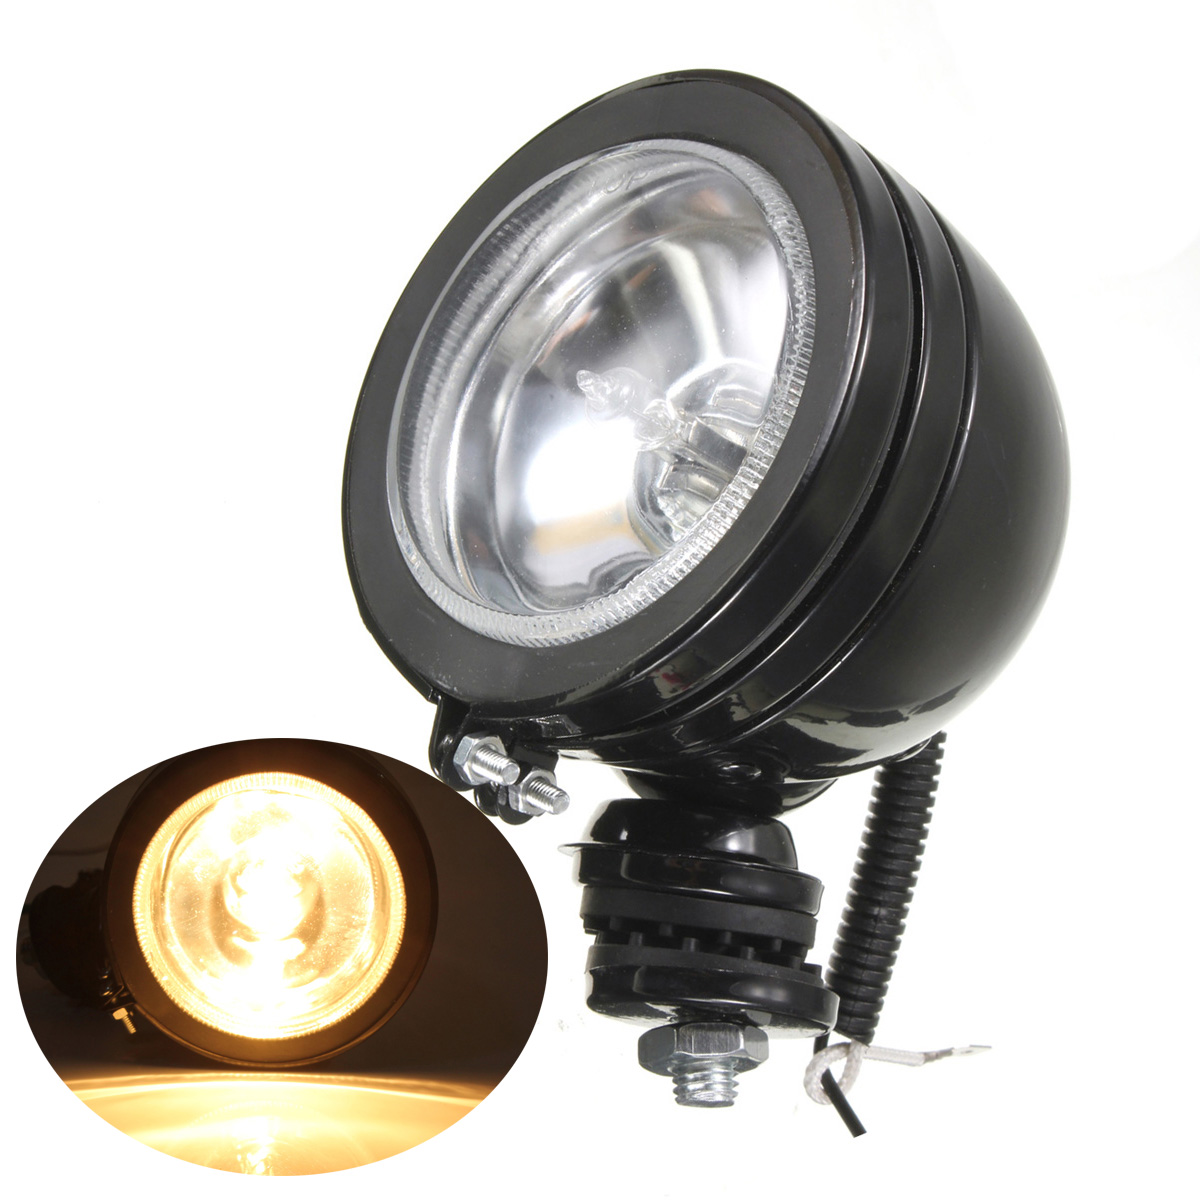 3 h3 12v 55w led car spotlight spot halogen fog light white beam work lamps. Black Bedroom Furniture Sets. Home Design Ideas